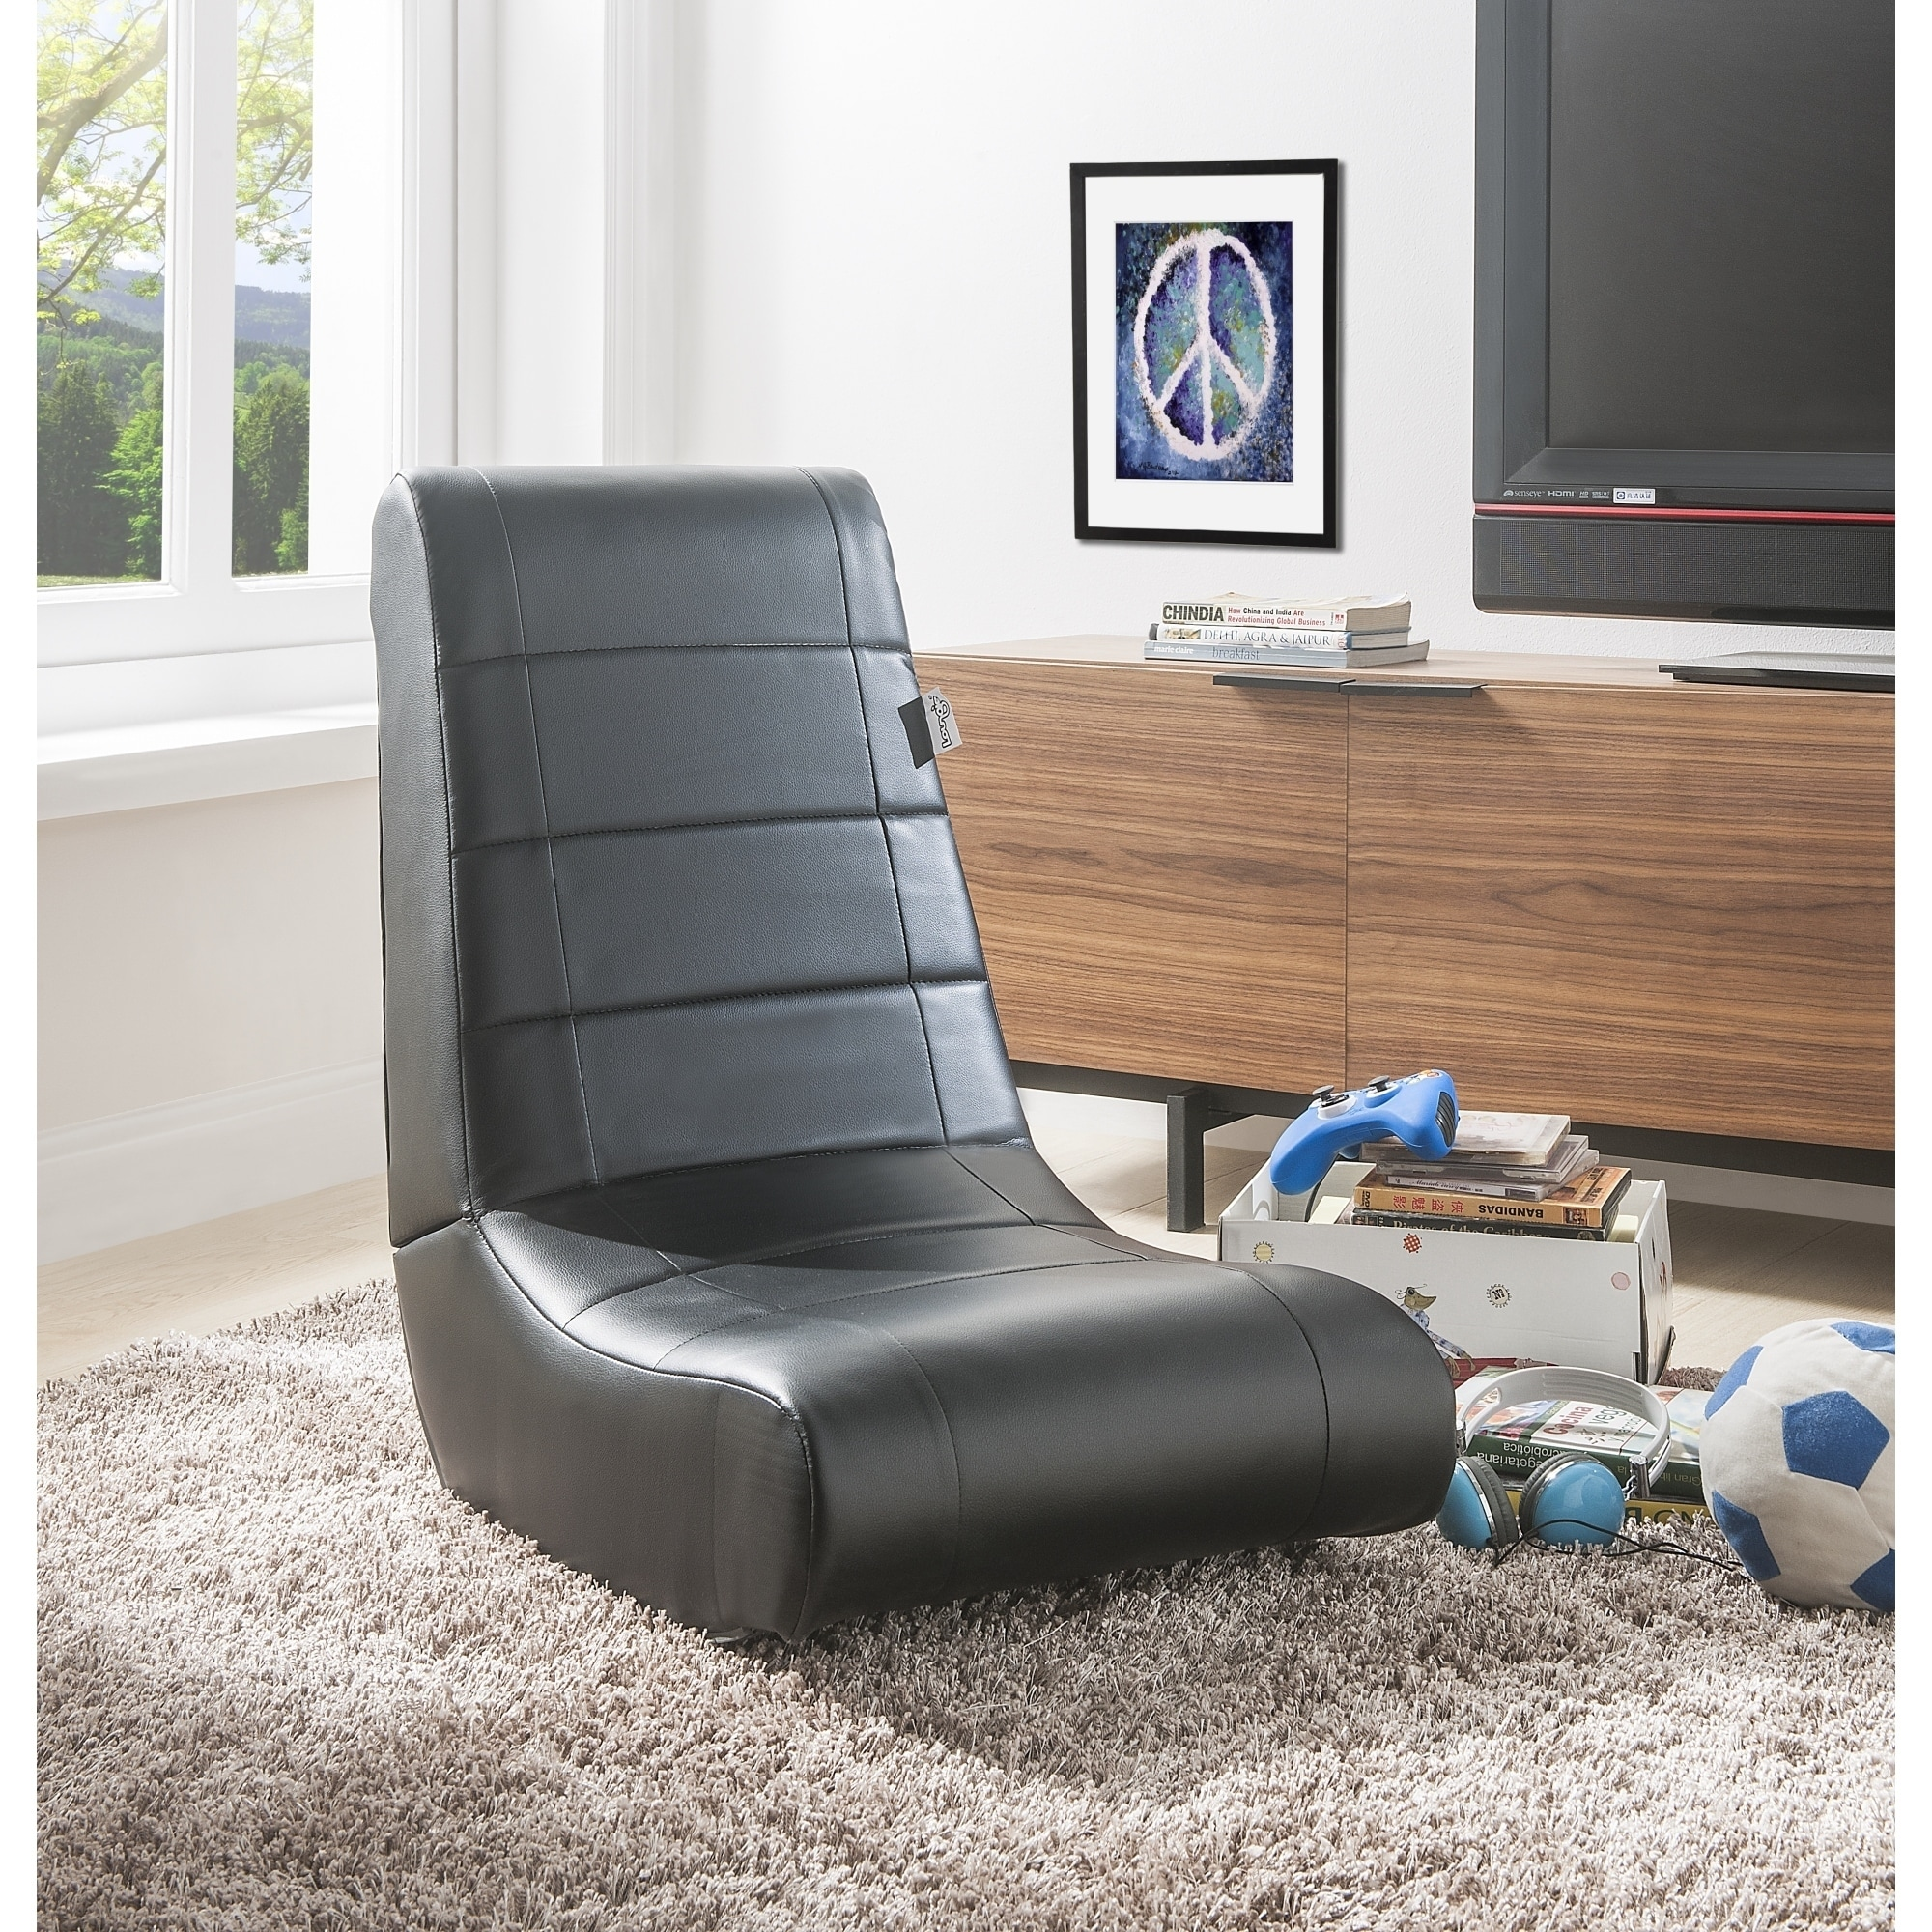 flip chair for adults abiie high gaming futon